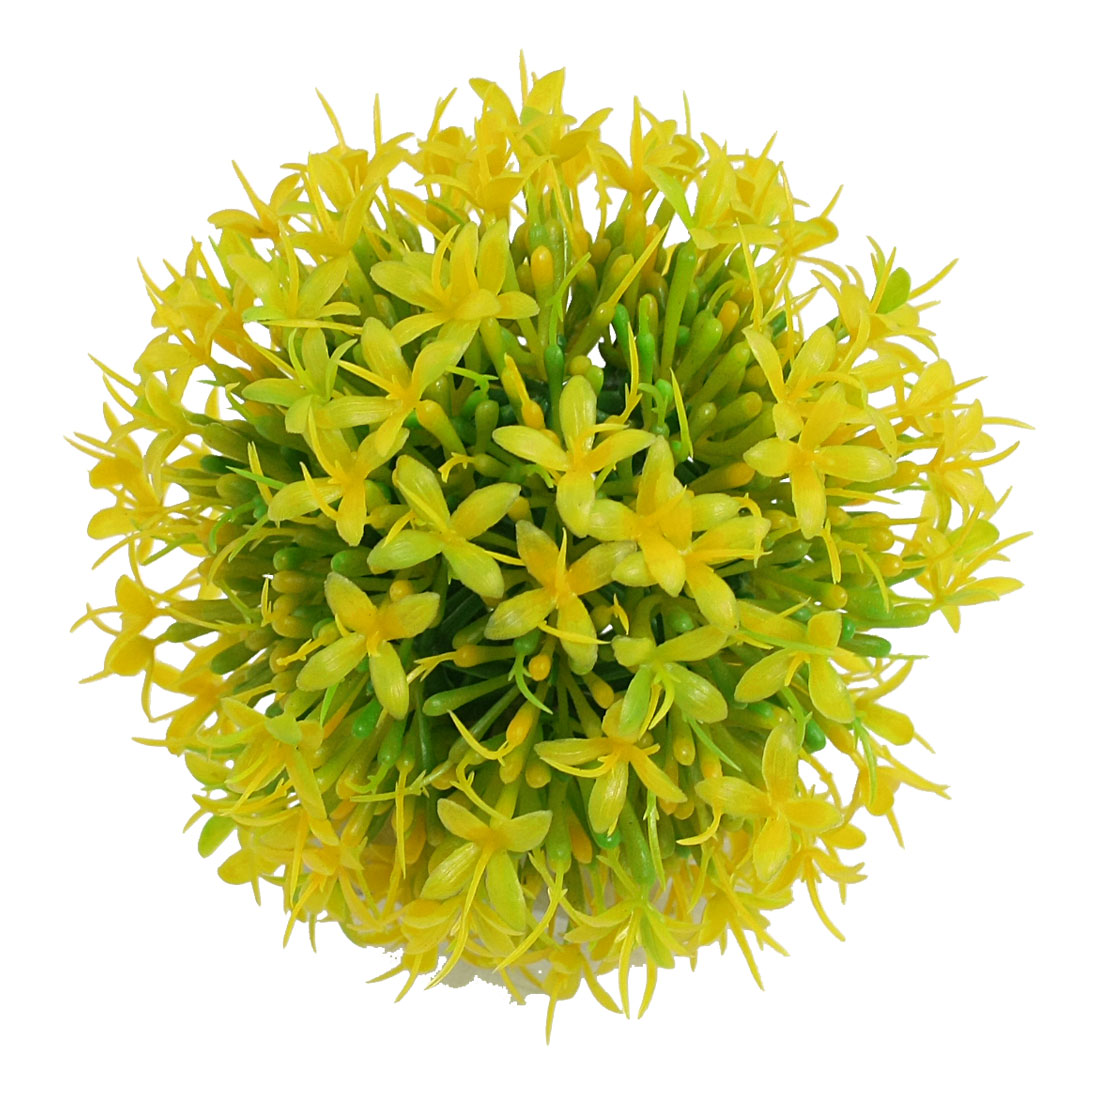 "Yellow Green Plastic Ball Flower Plant 3.7"" for Aquarium Fish Tank"